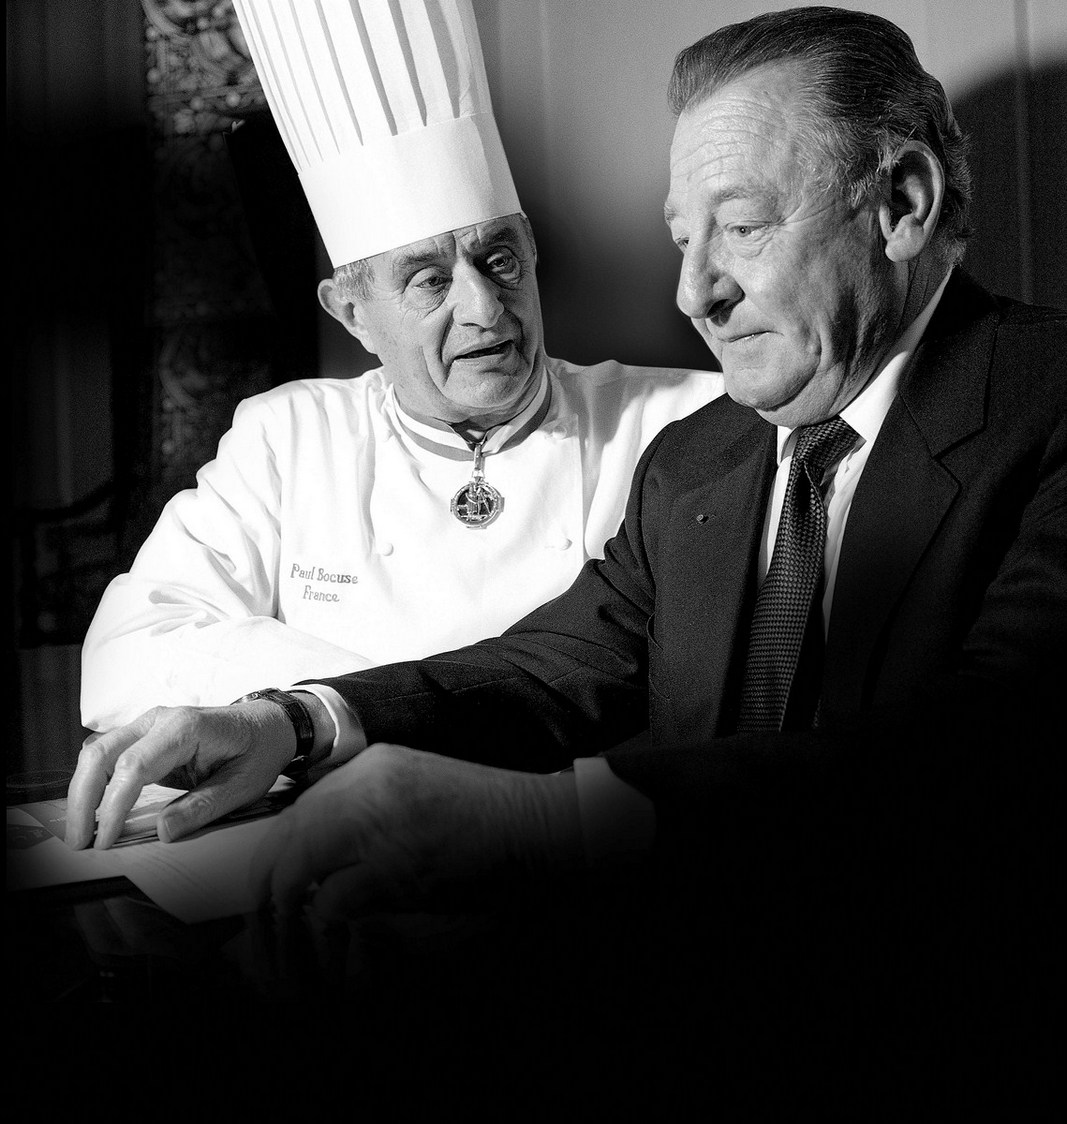 paul_bocuse_gerard_pelisson